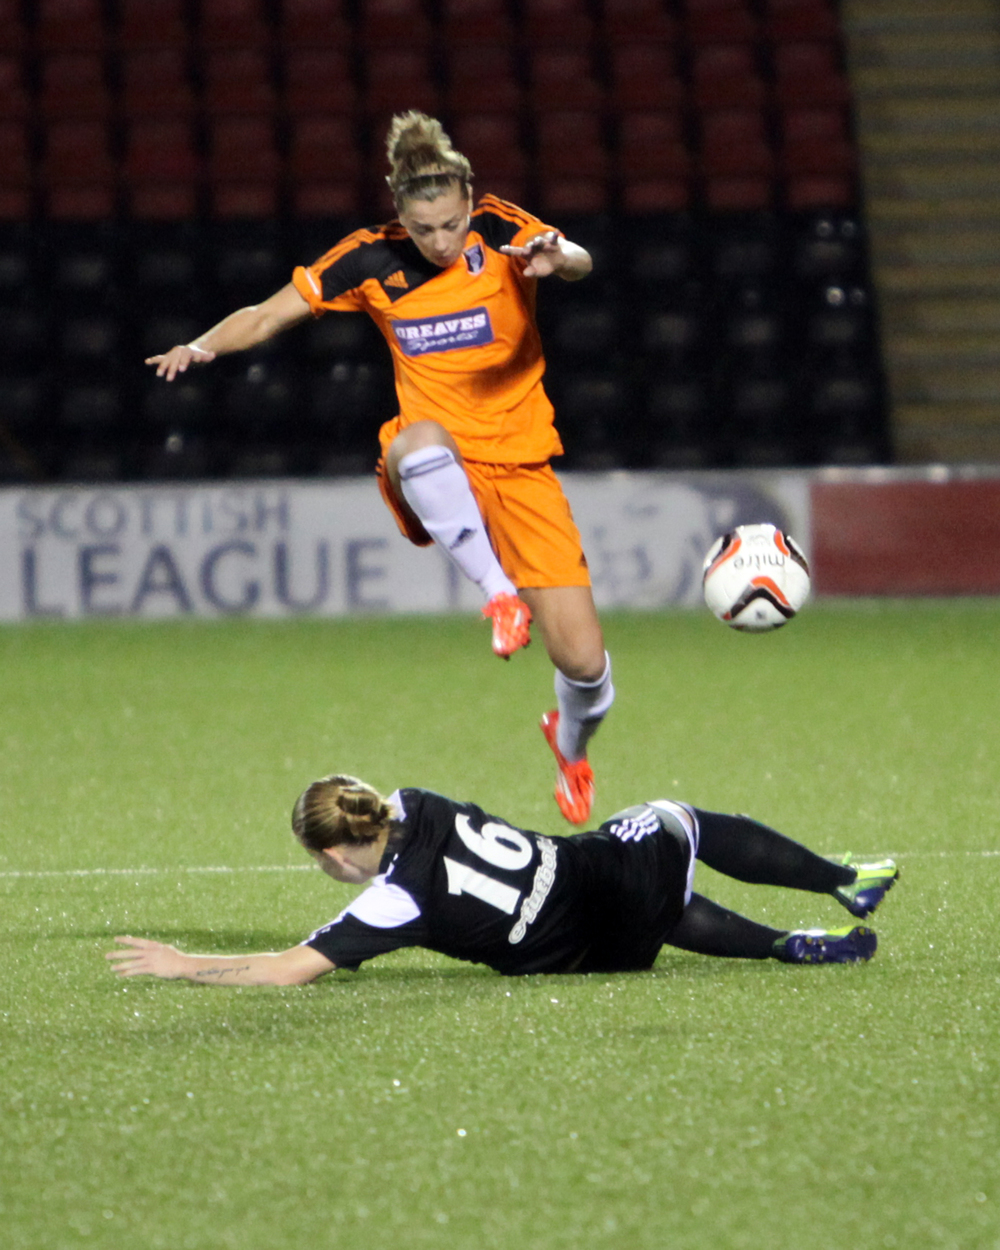 Nicola Docherty skips the challenage. Image by Andy Buist